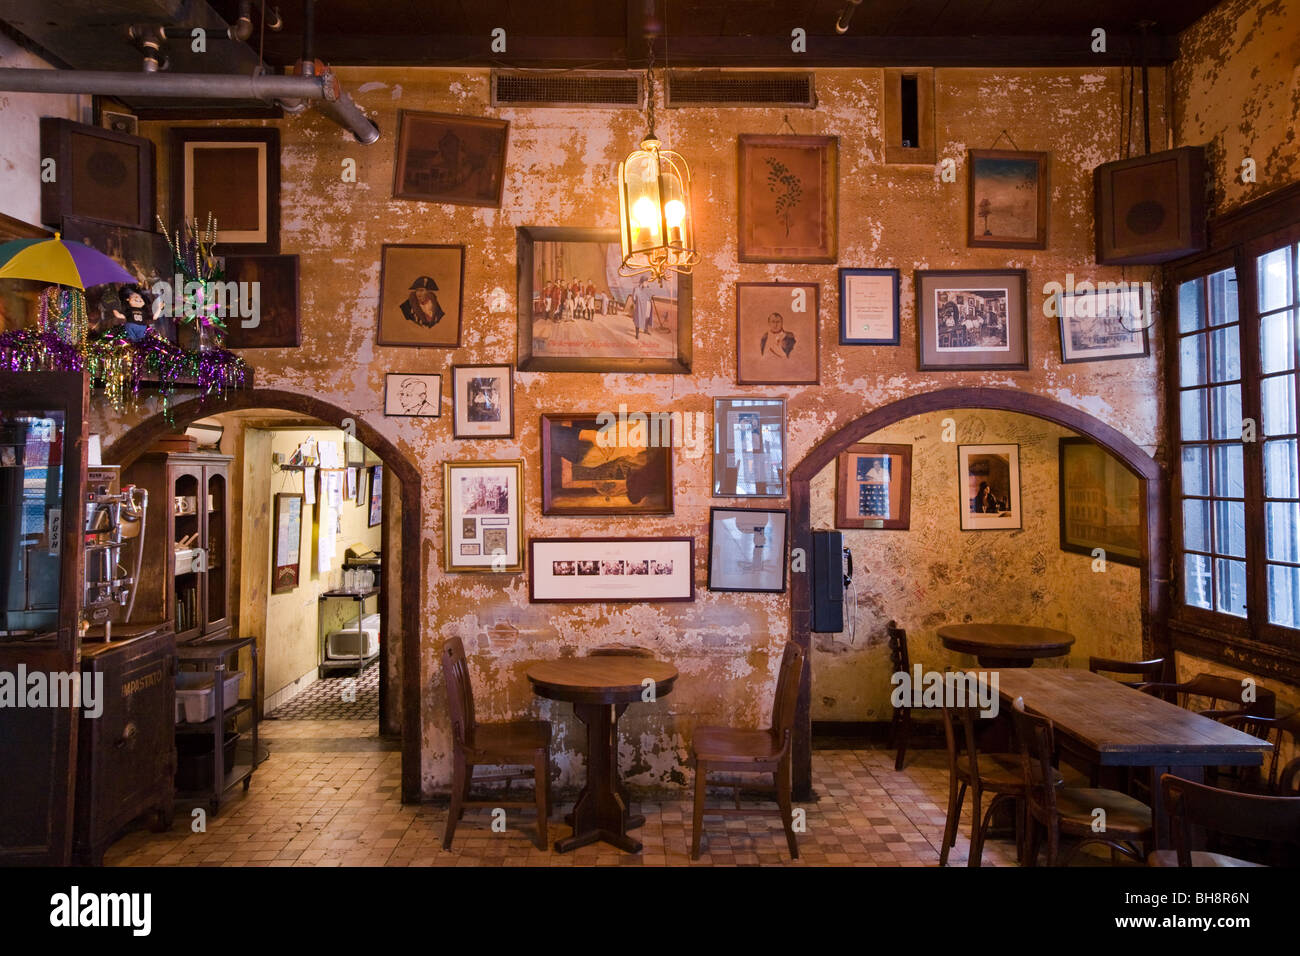 Interior of the napoleon house french quarter new